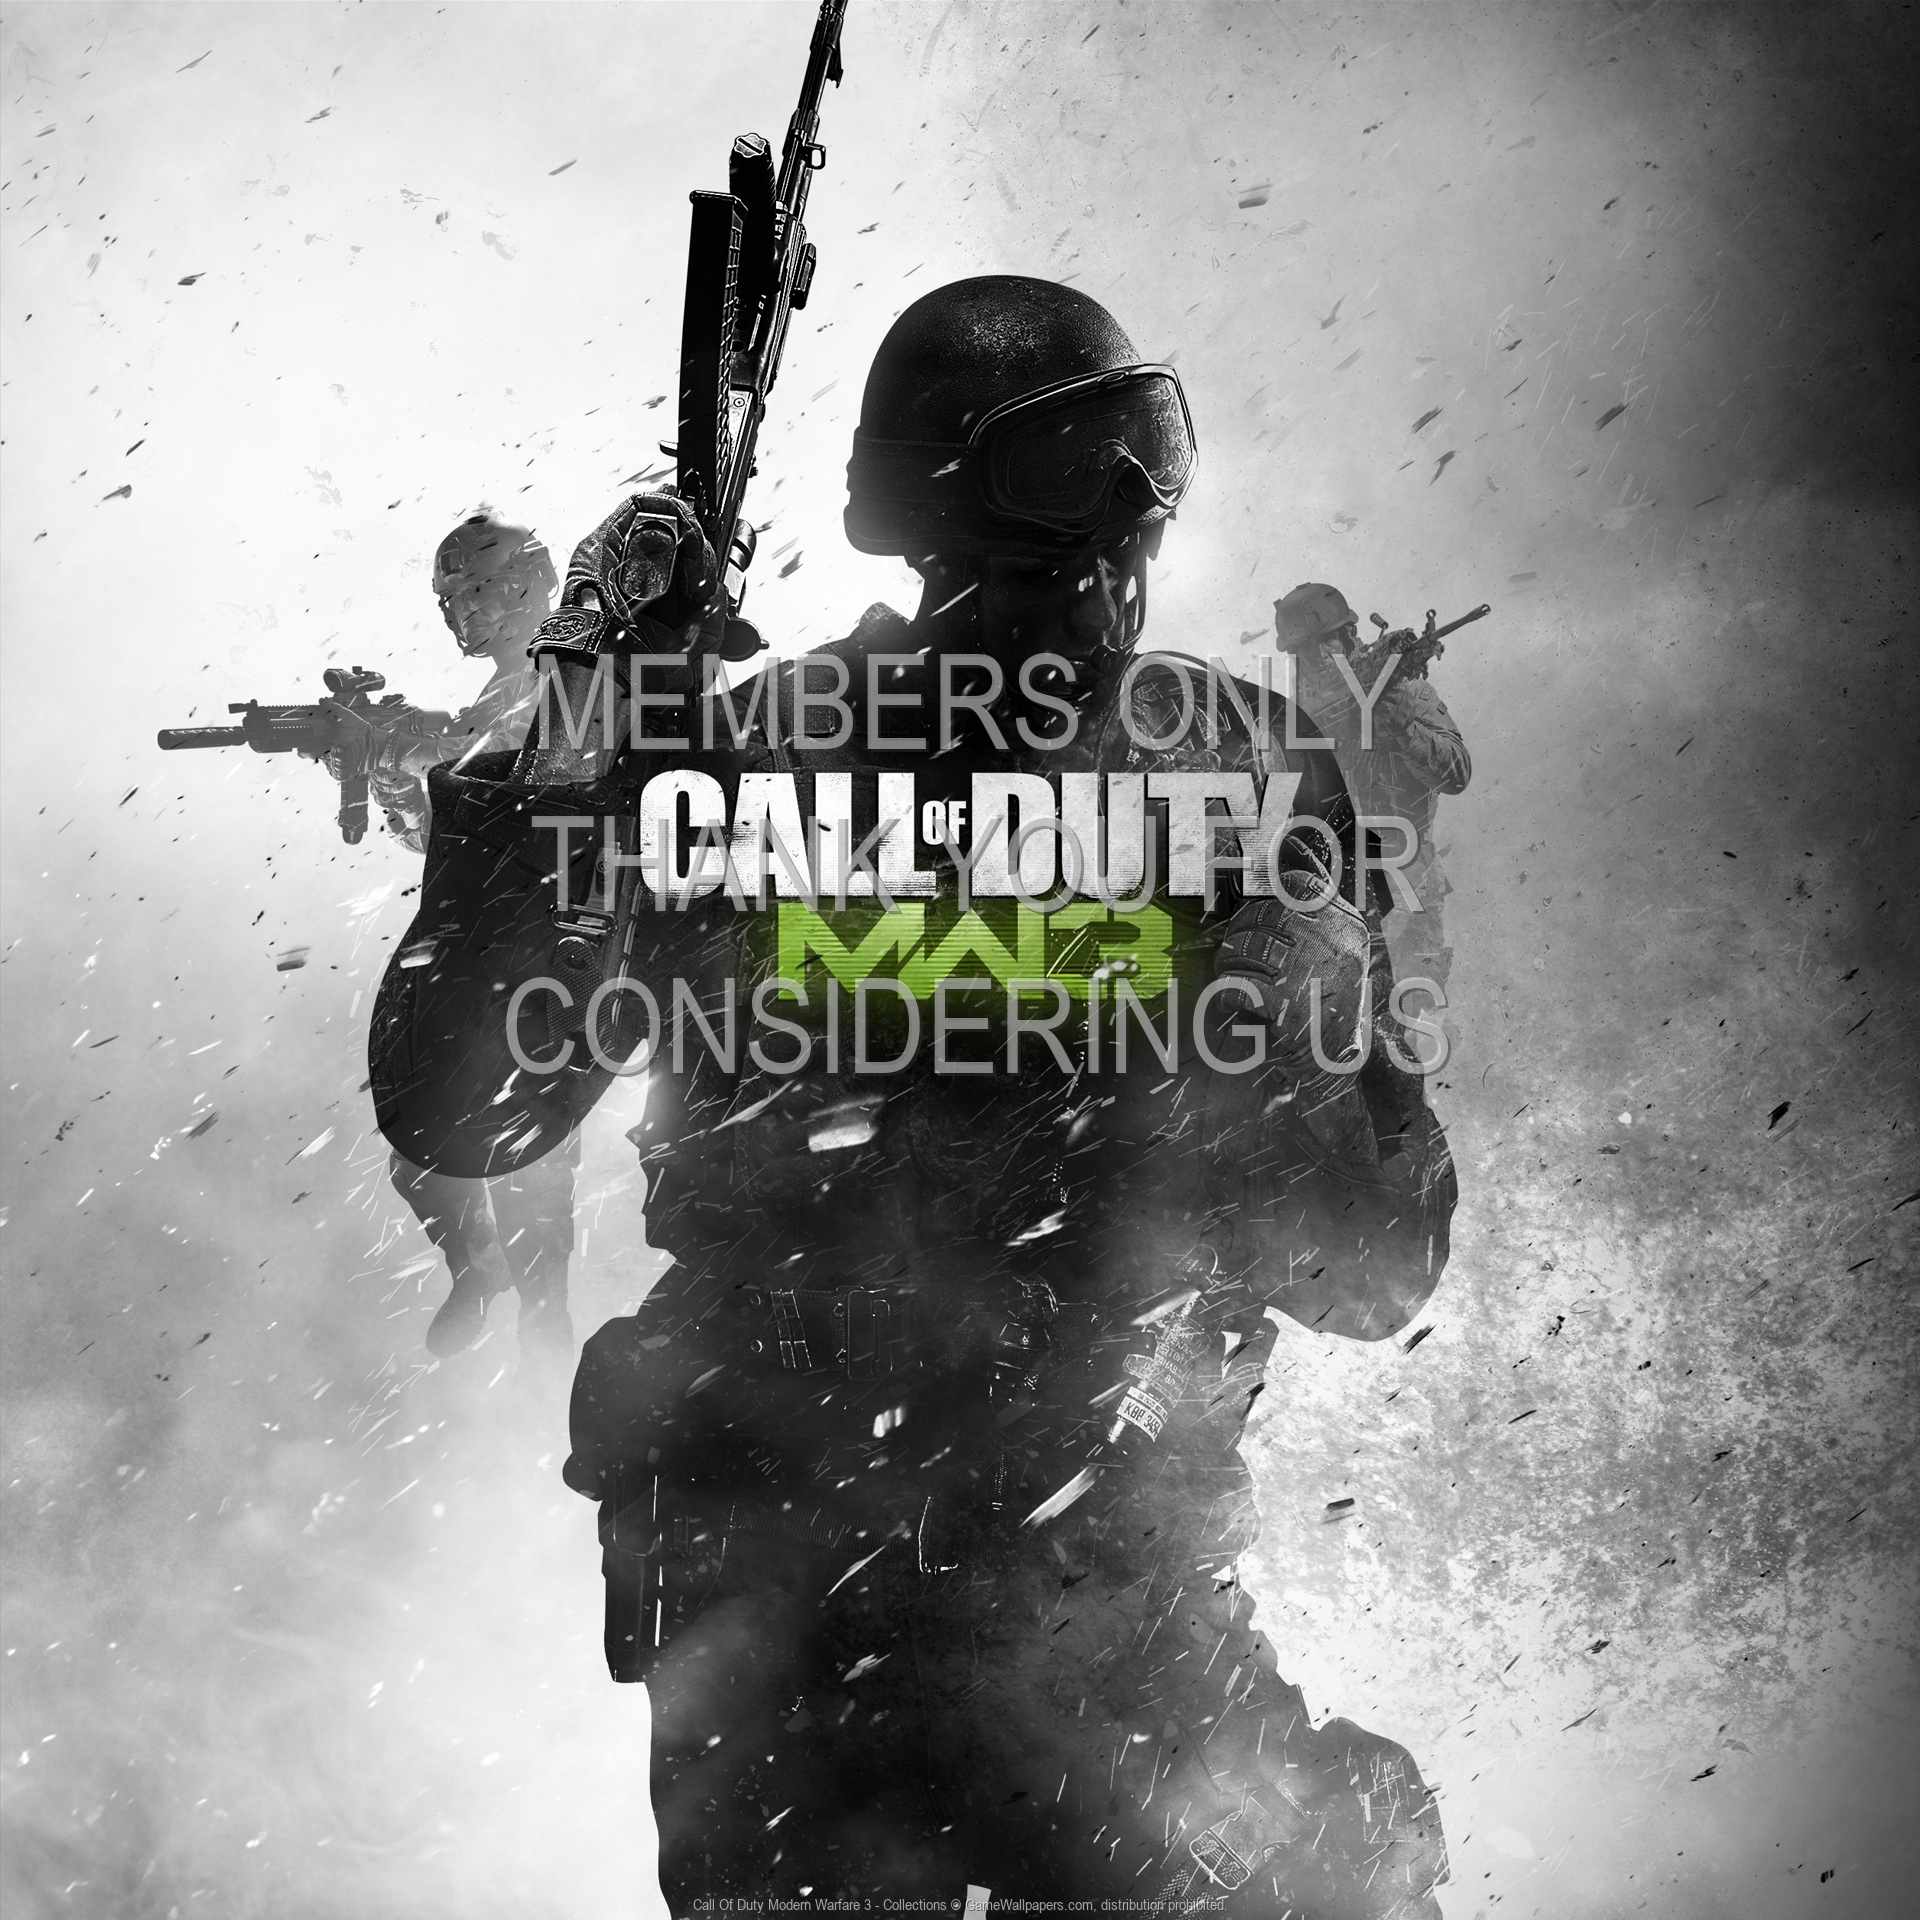 Call Of Duty: Modern Warfare 3 - Collections 1920x1080 Mobile wallpaper or background 02